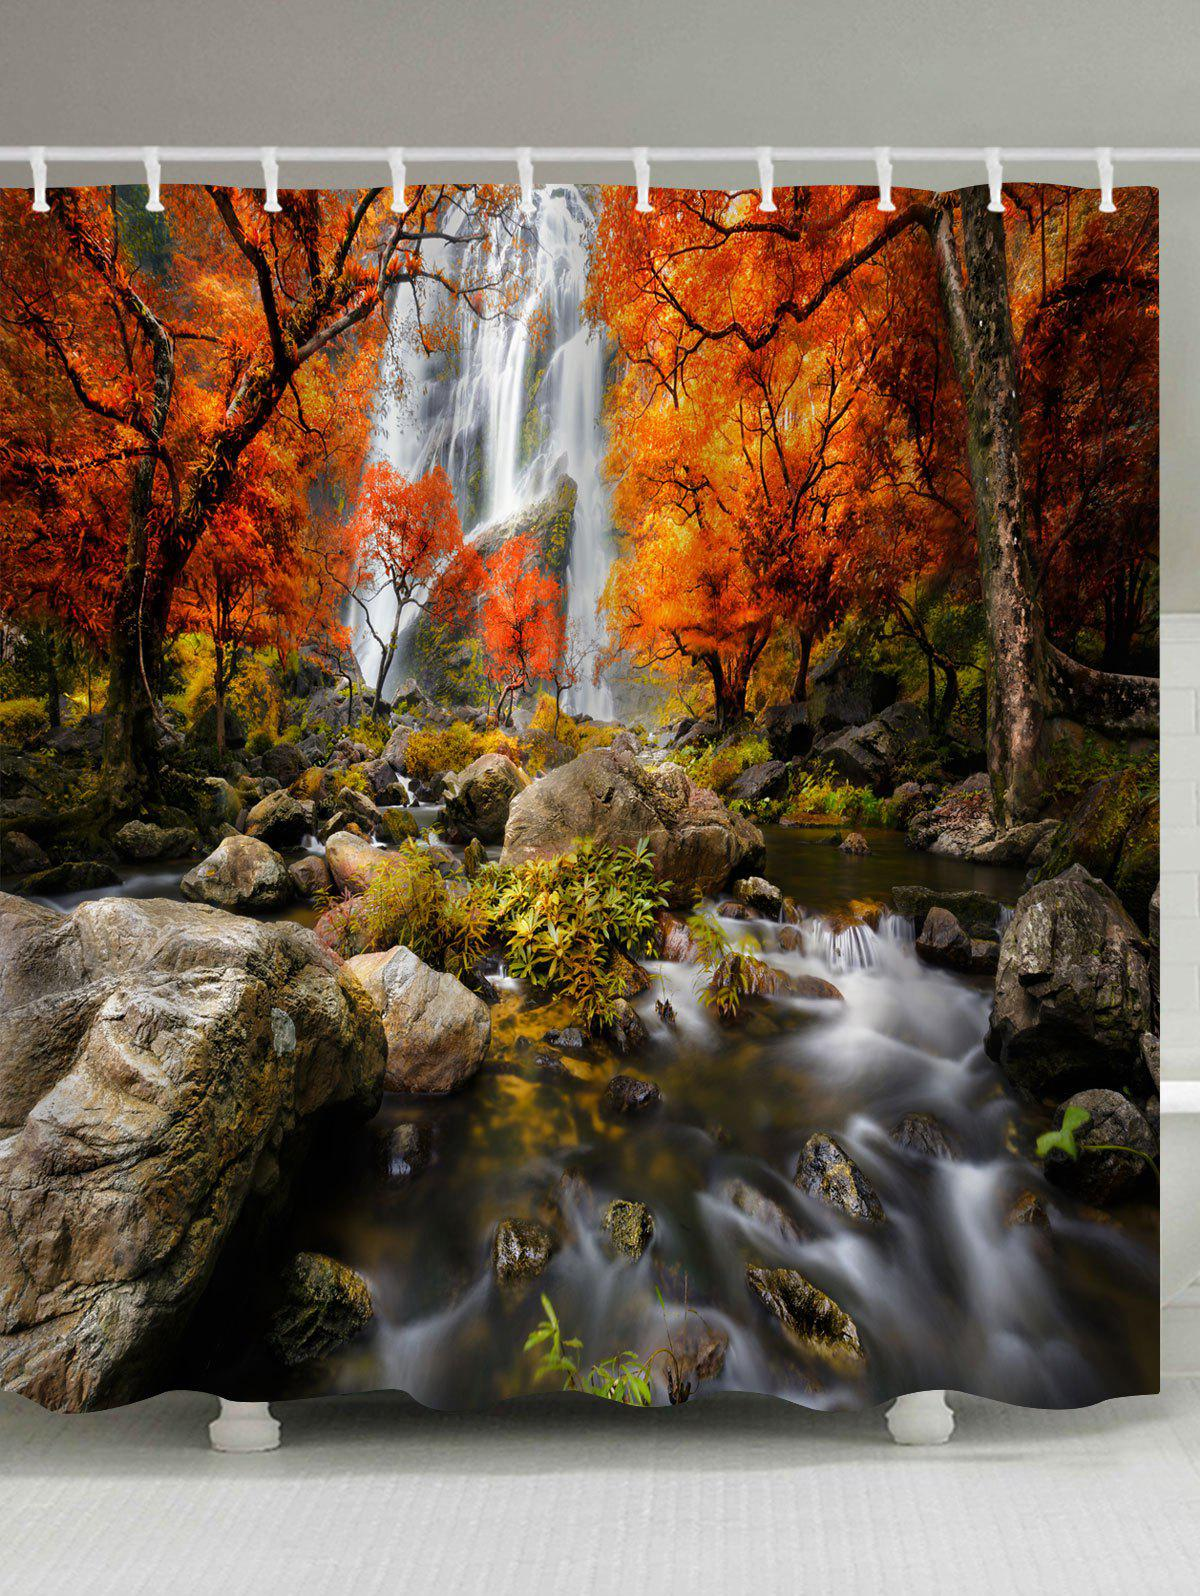 Waterfall Maple Forest Print Waterproof Bathroom Shower Curtain merry christmas waterproof shower curtain bathroom decoration